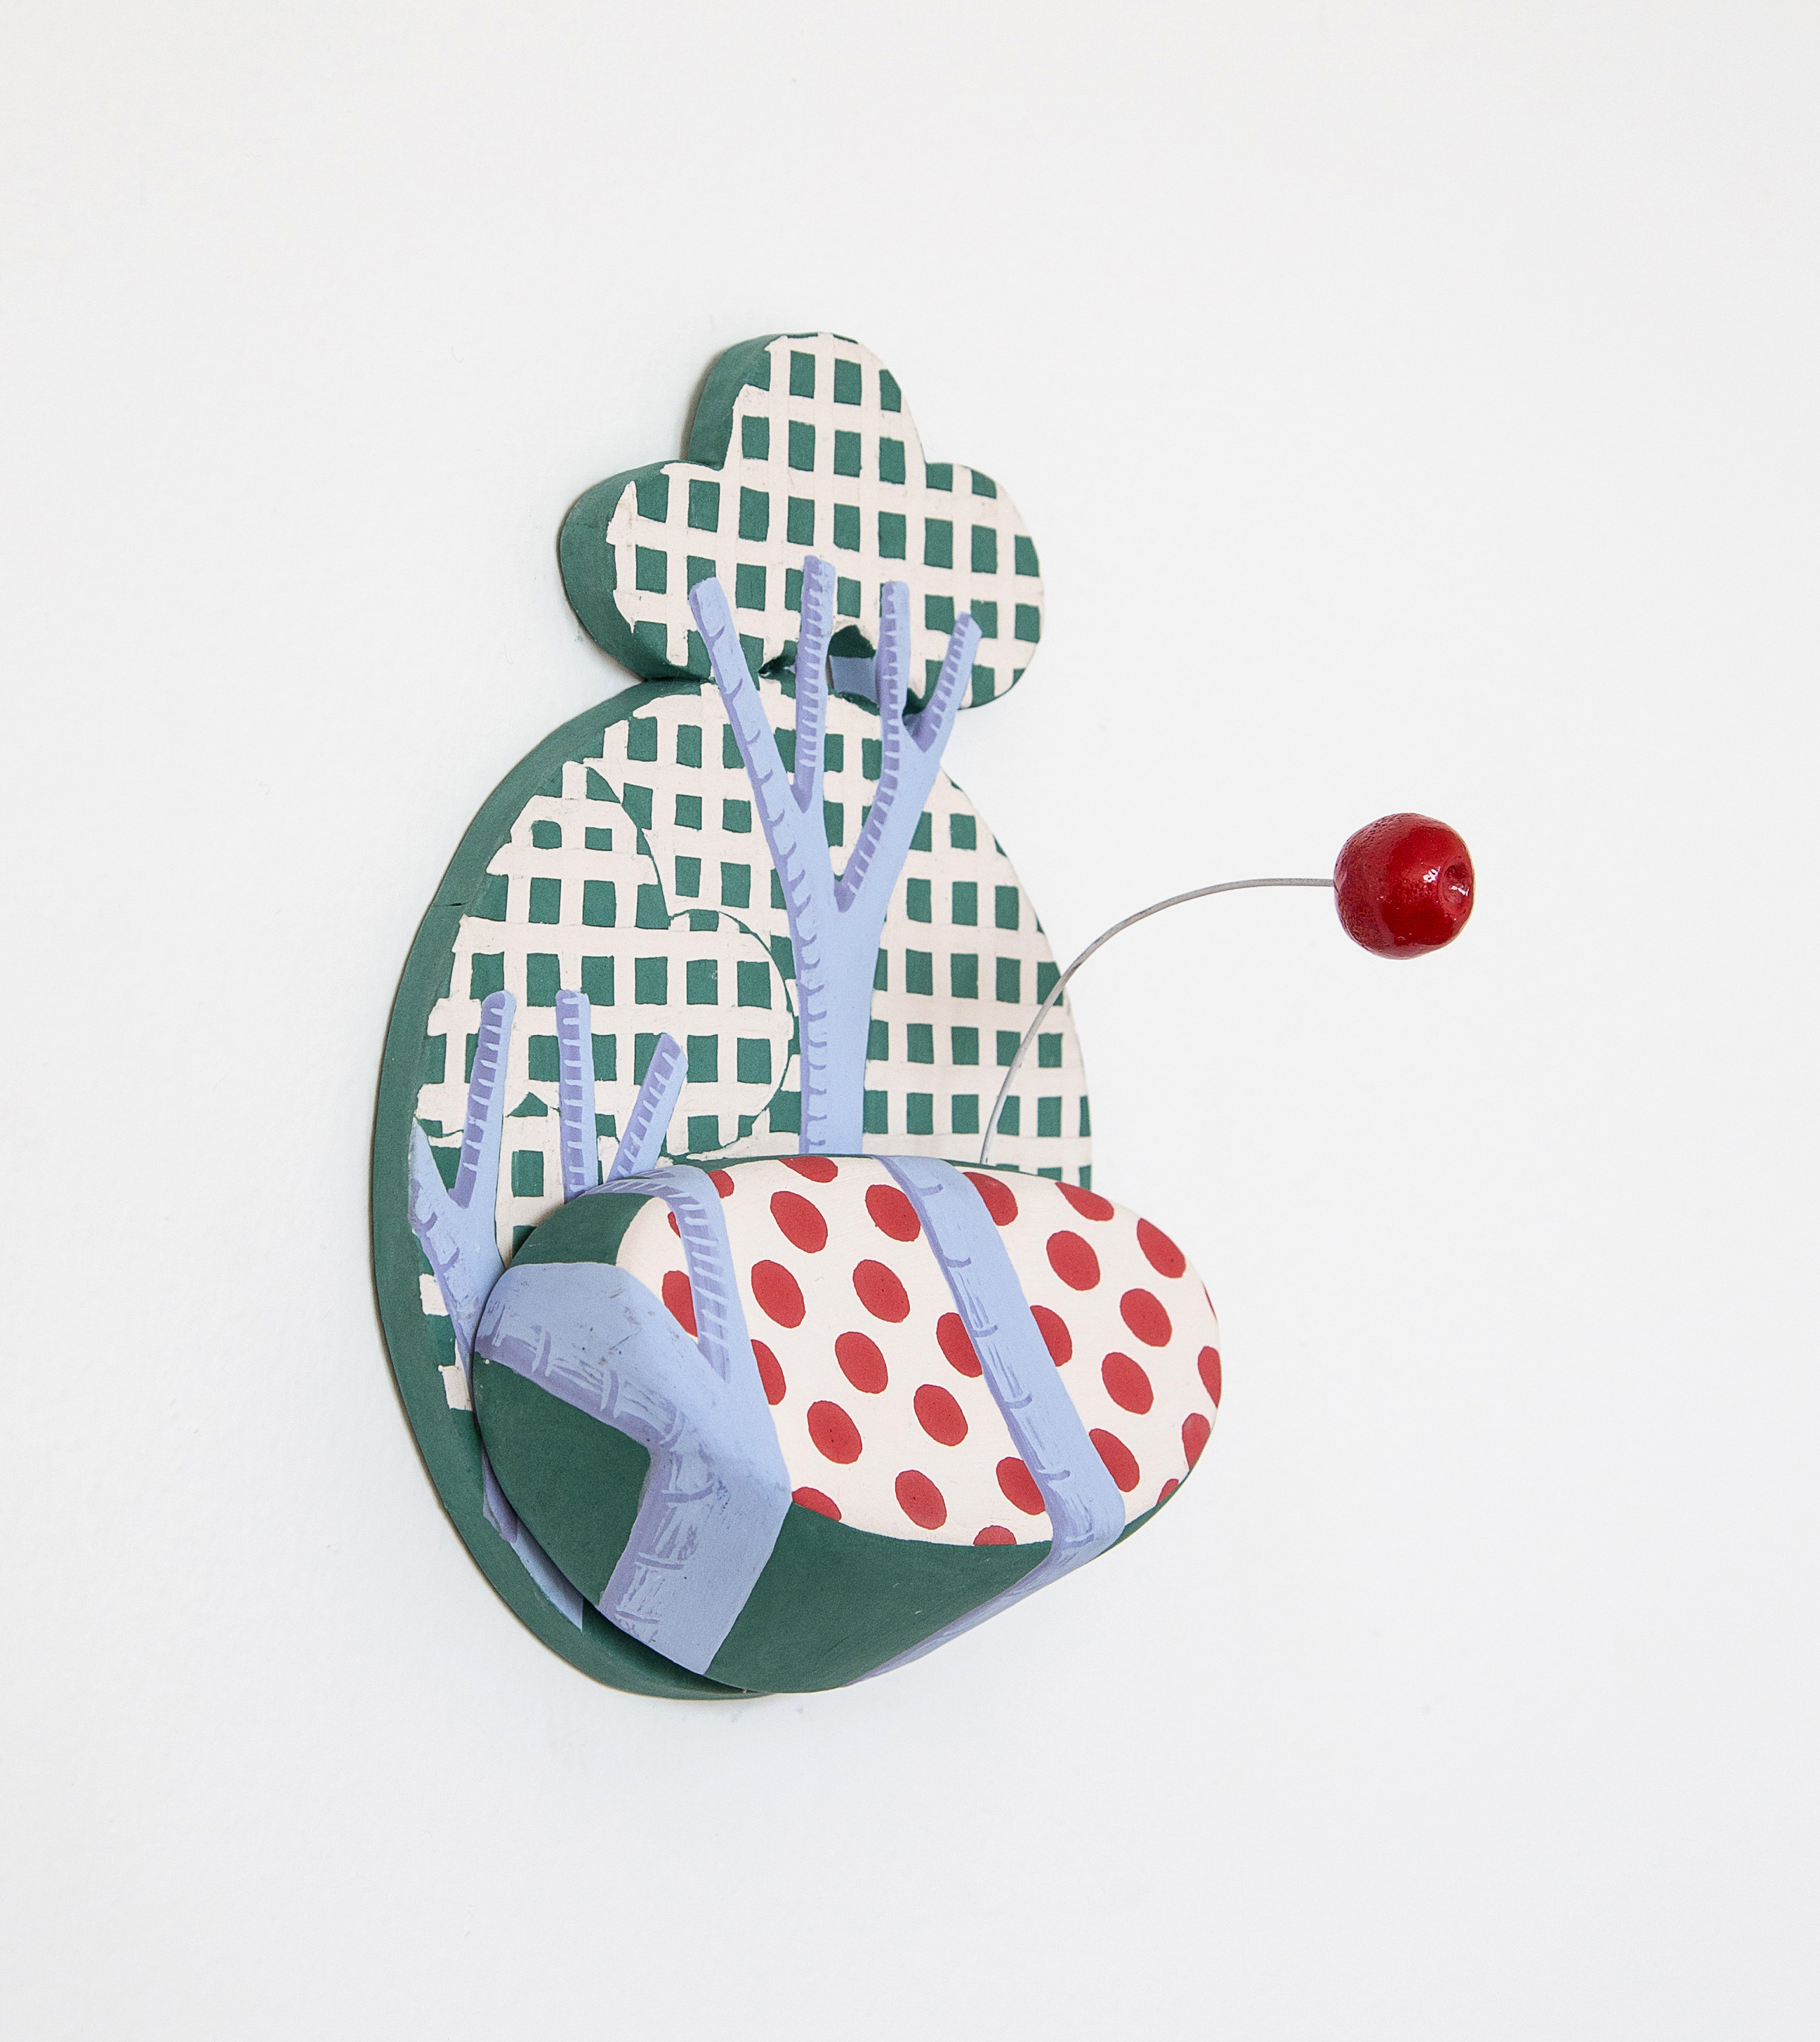 Shifty Rickrack with Boing, 2017 (side view); Porcelain tile, shelf, and appendage with wire; 18.41 x 15.24 x 10.16cm